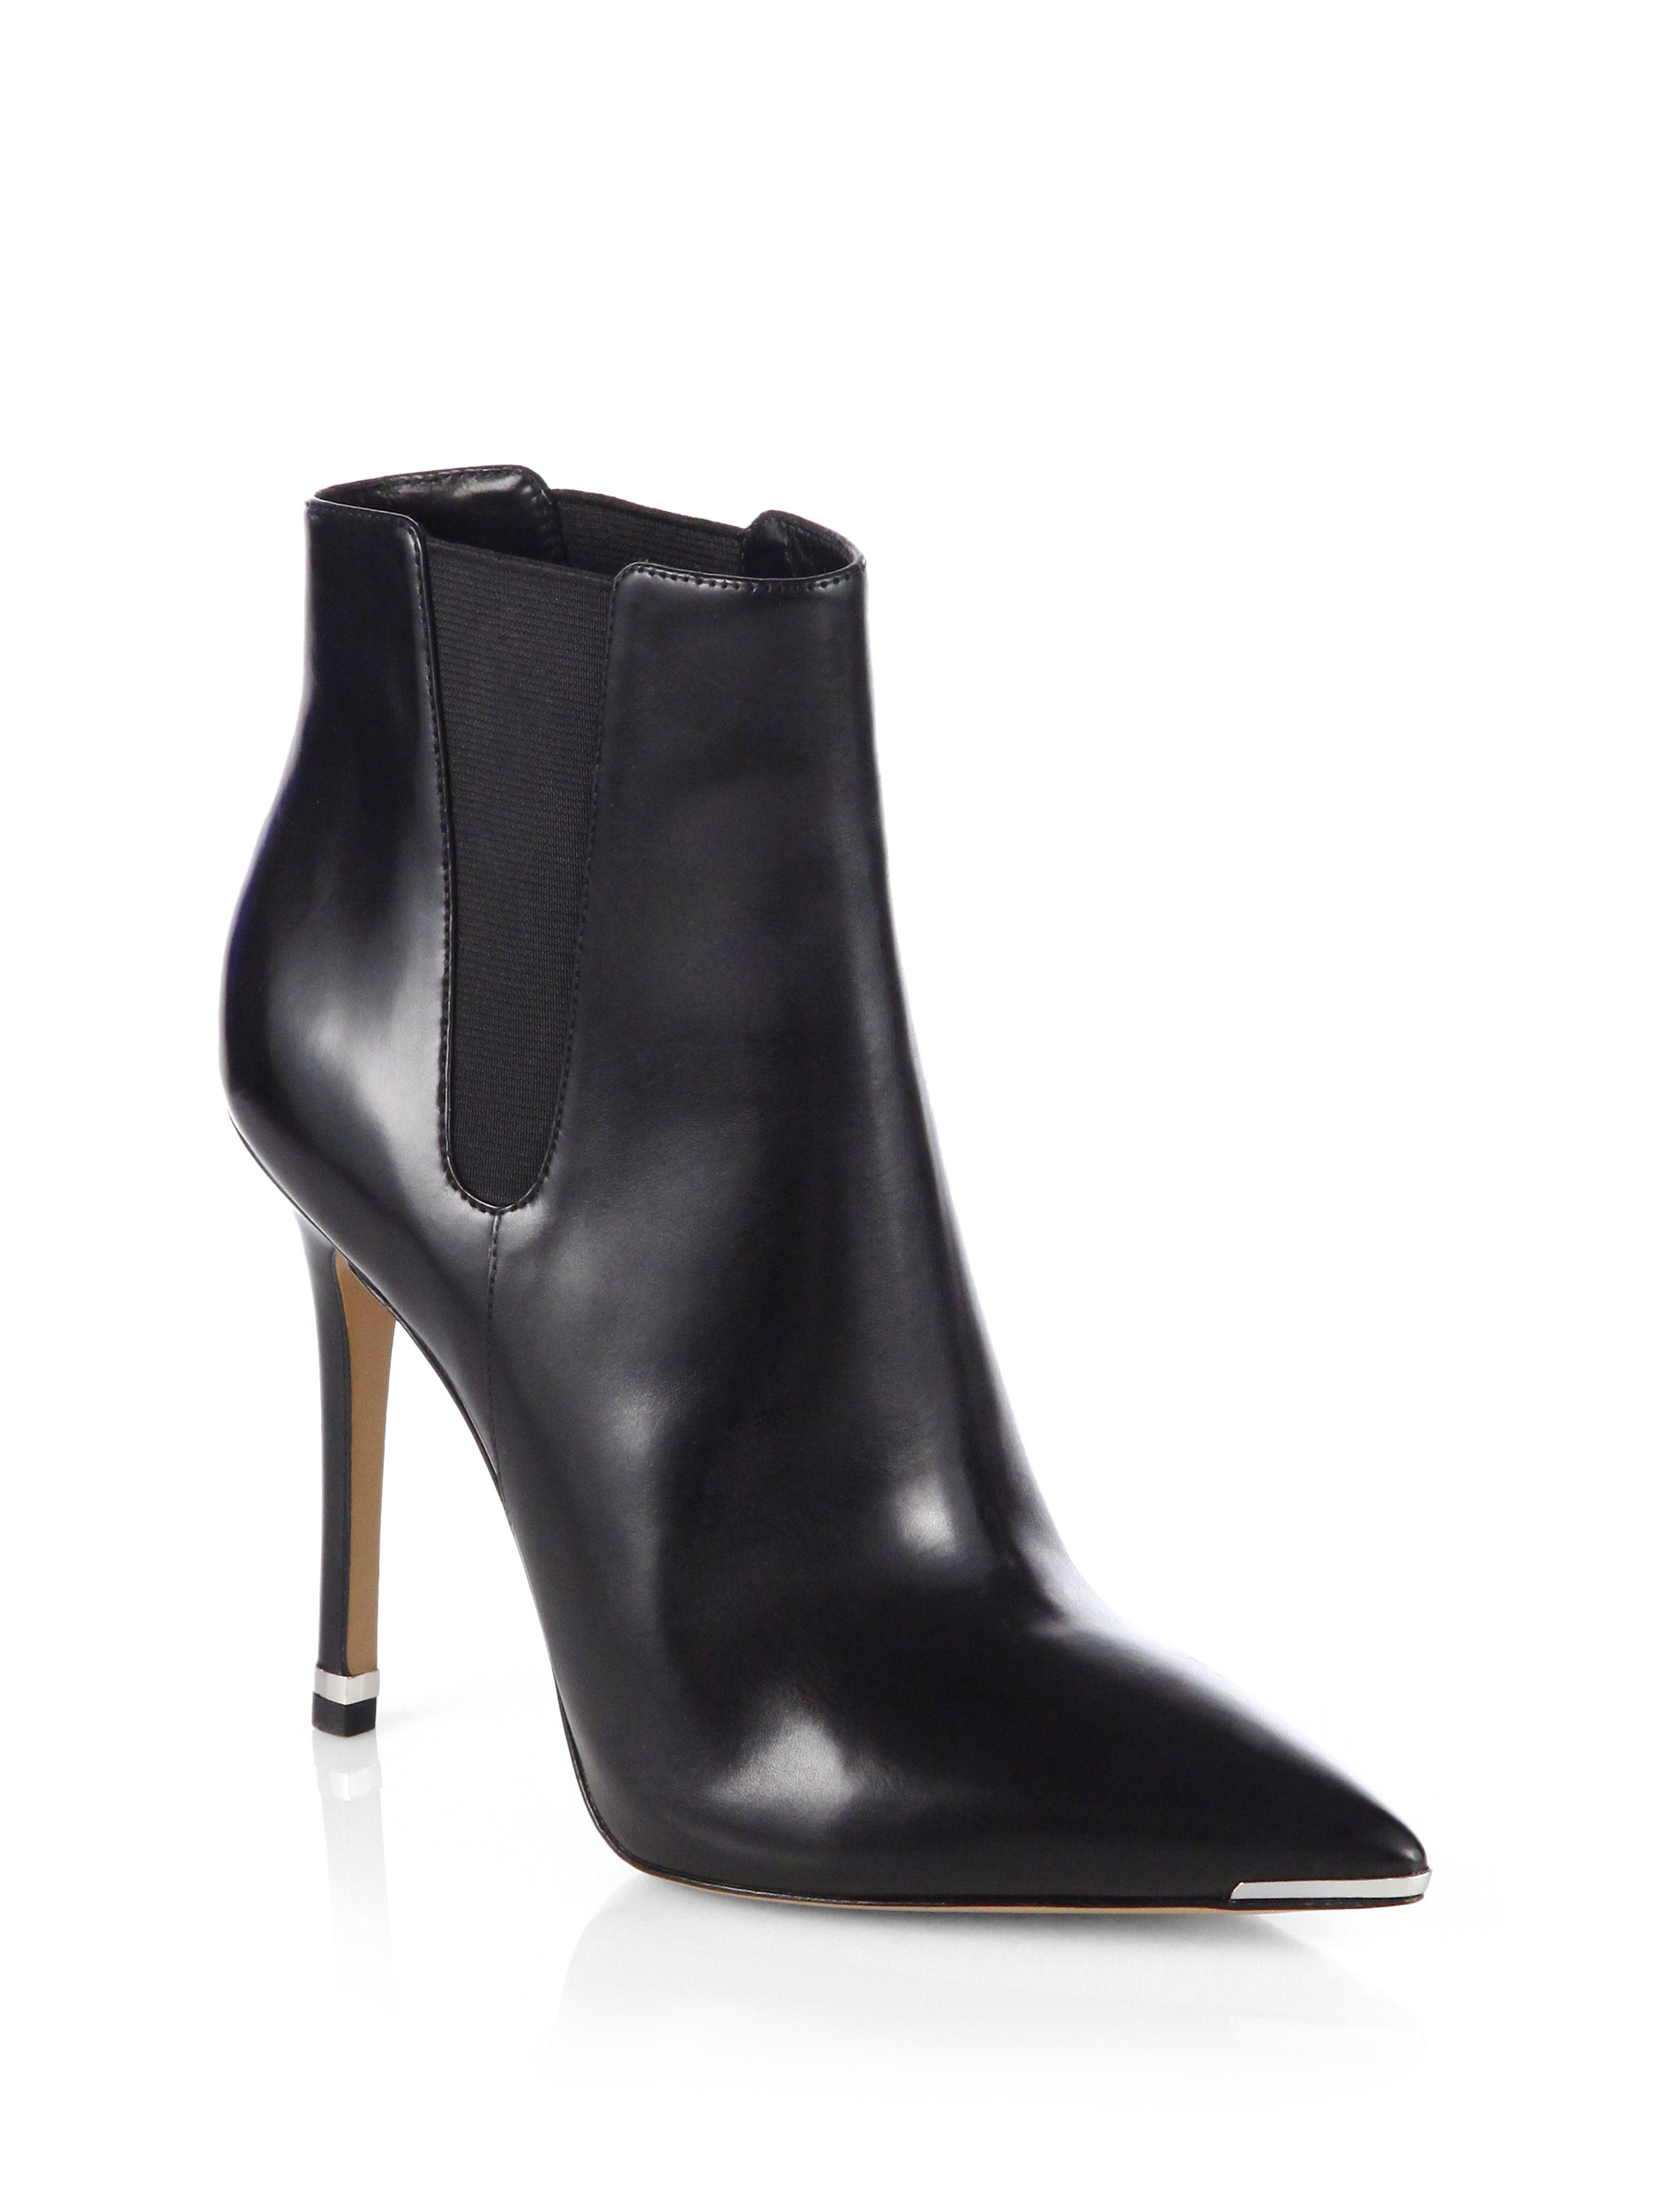 lyst michael kors andie leather ankle boots in black. Black Bedroom Furniture Sets. Home Design Ideas